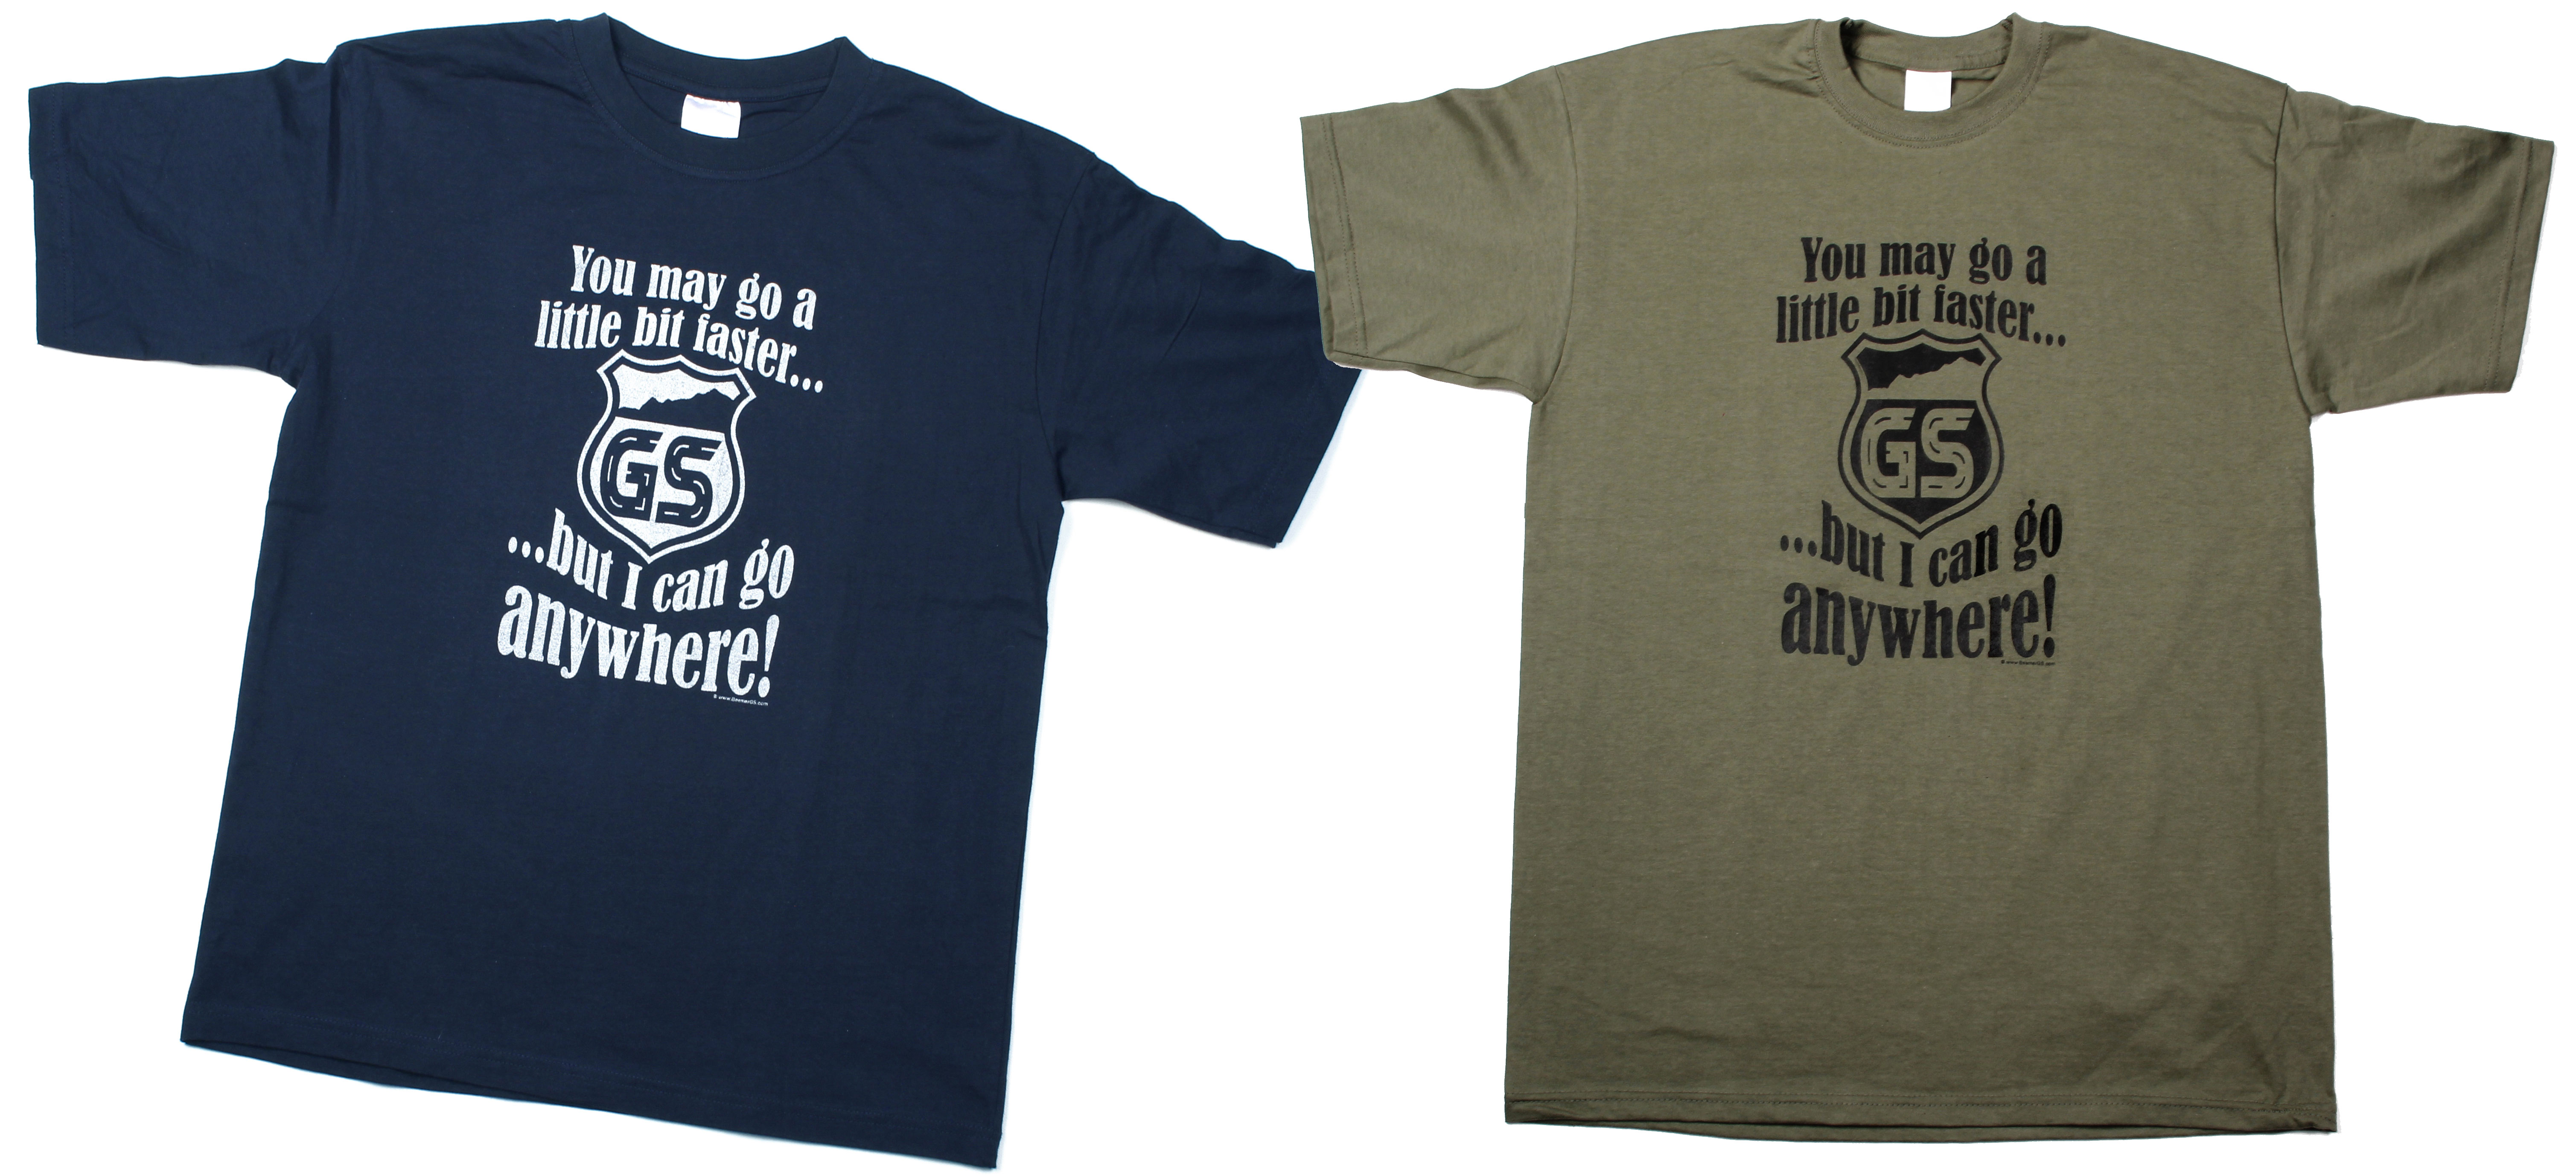 You may go a little bit faster... ...but I can go anywhere! The T-shirt designed for the owners of a BMW GS